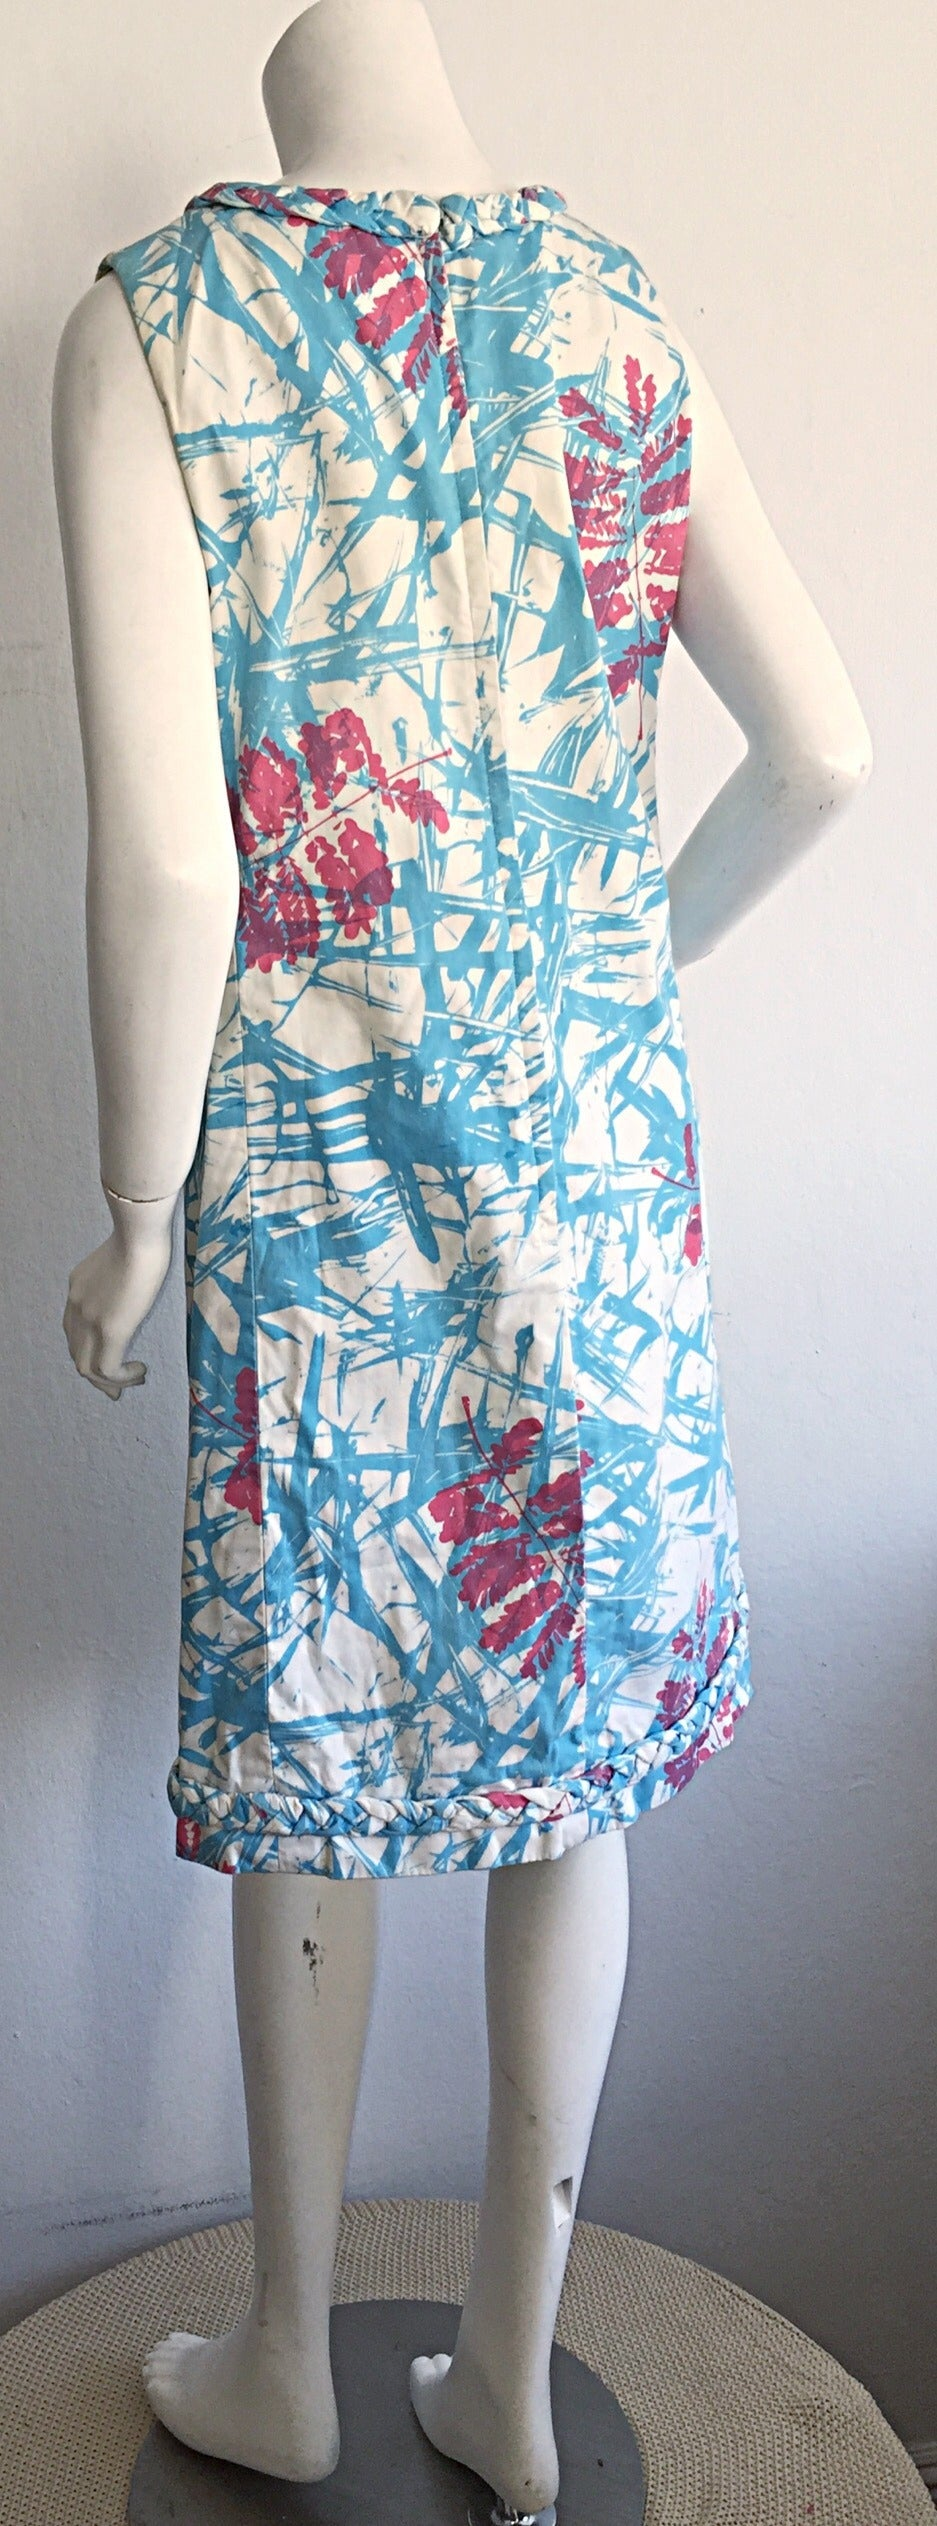 Rare 1960s Vintage ' THe Lilly ' by Lilly Pulitzer ' Thorn ' Cotton Shift Dress 7